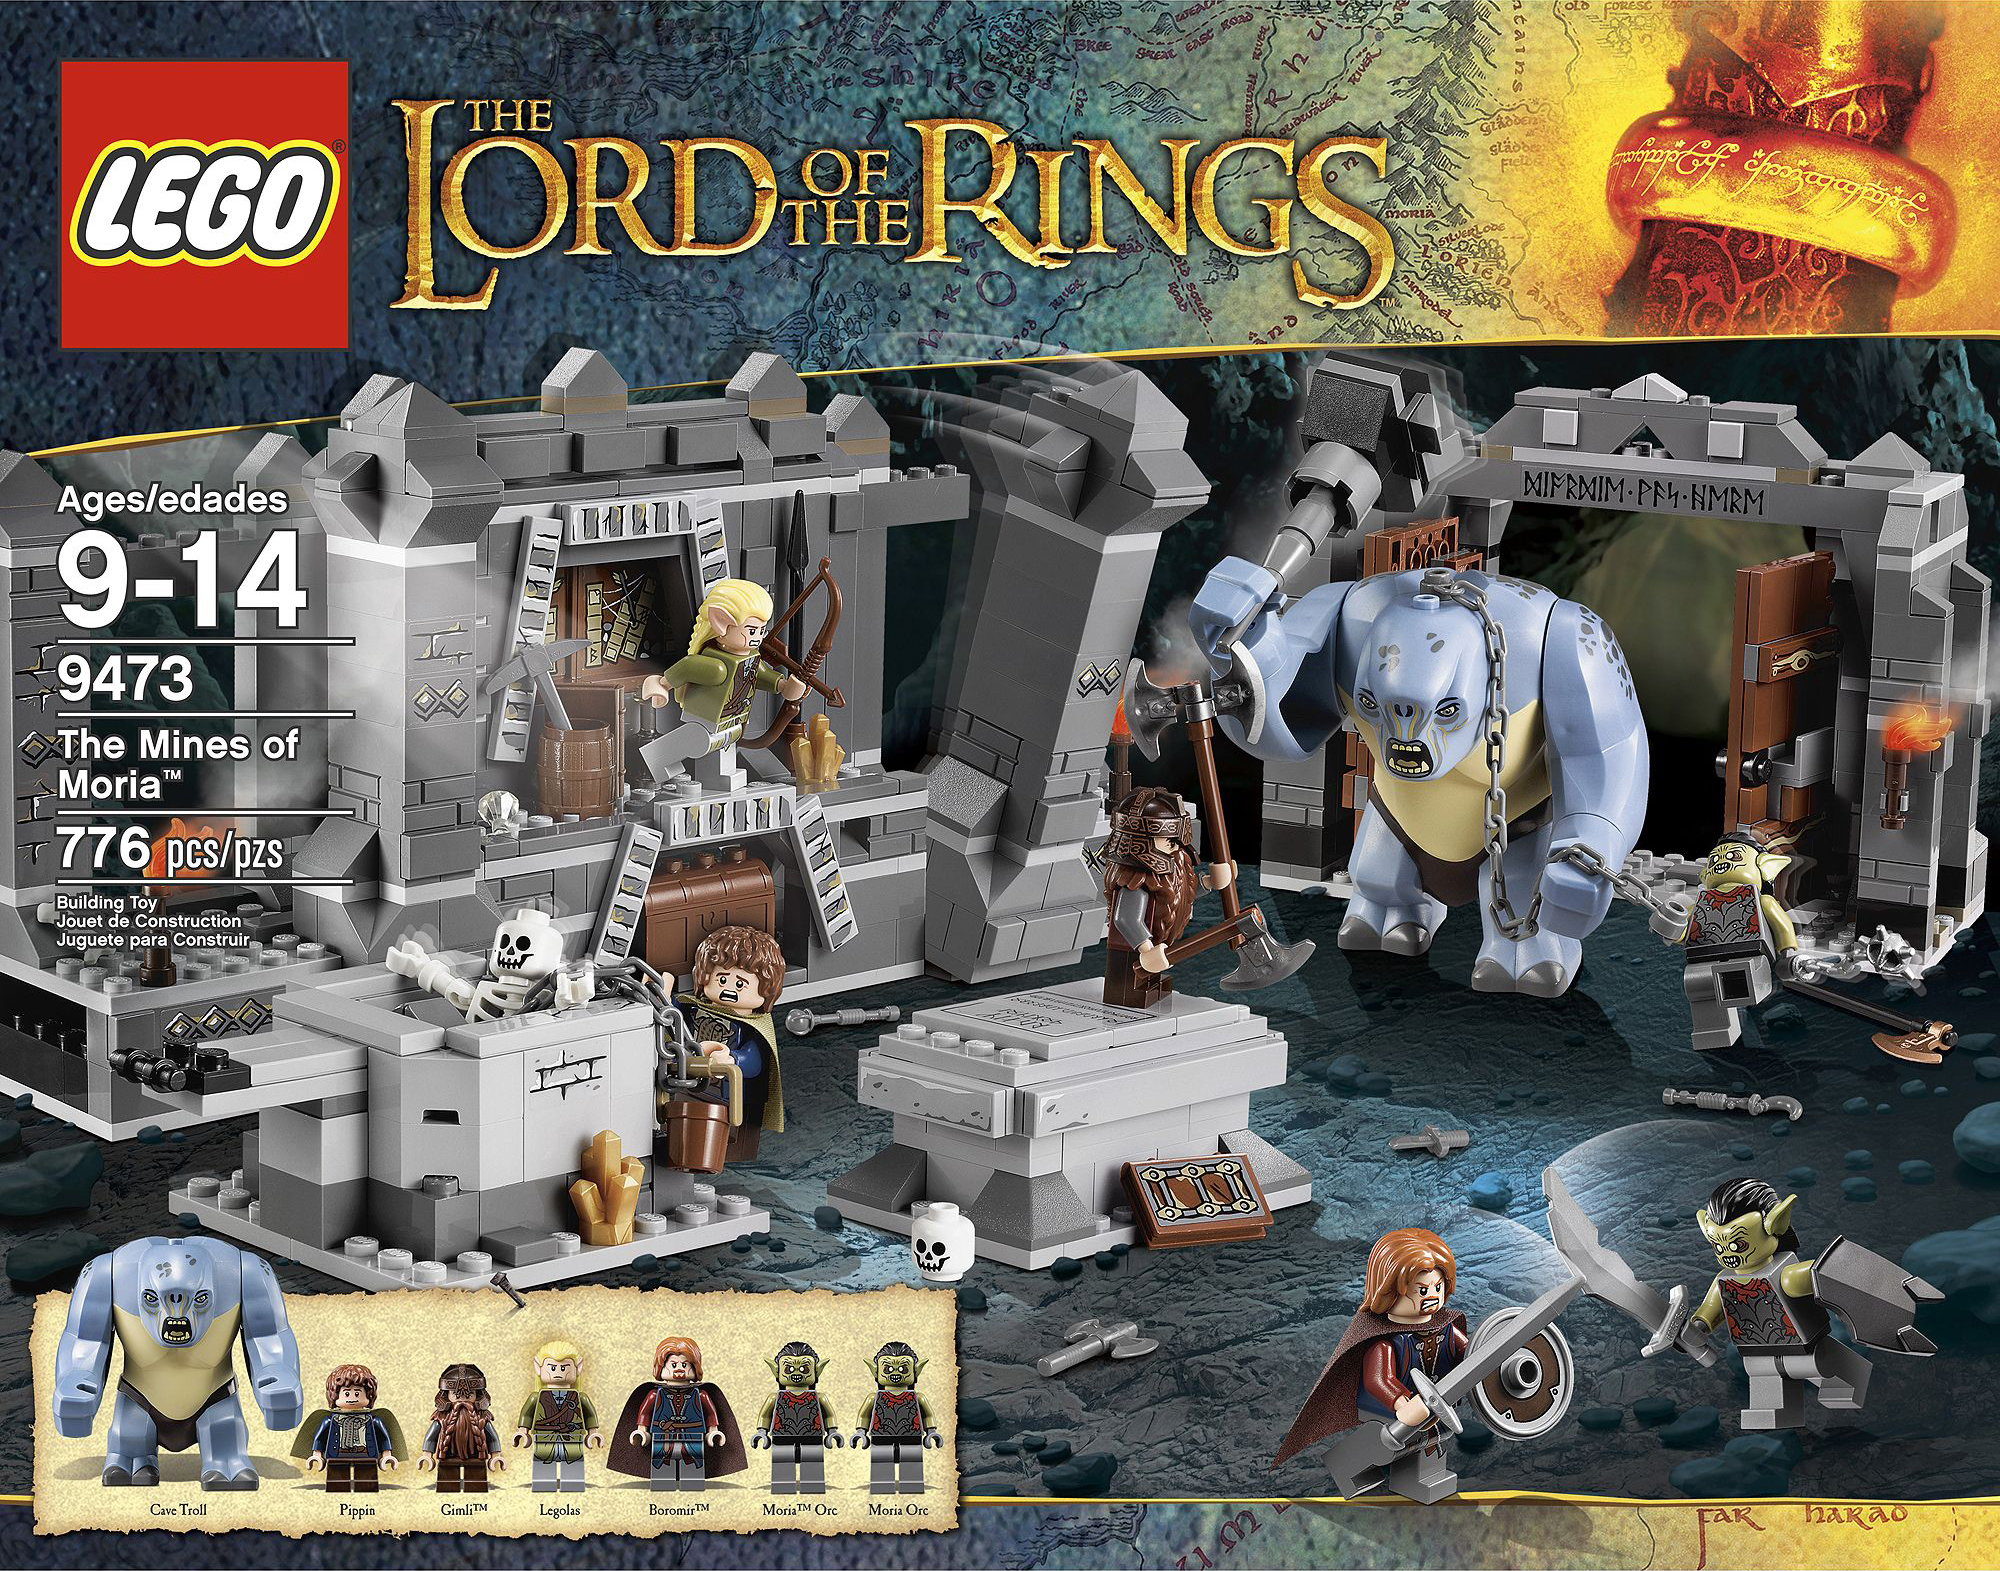 lord of the rings rumphy